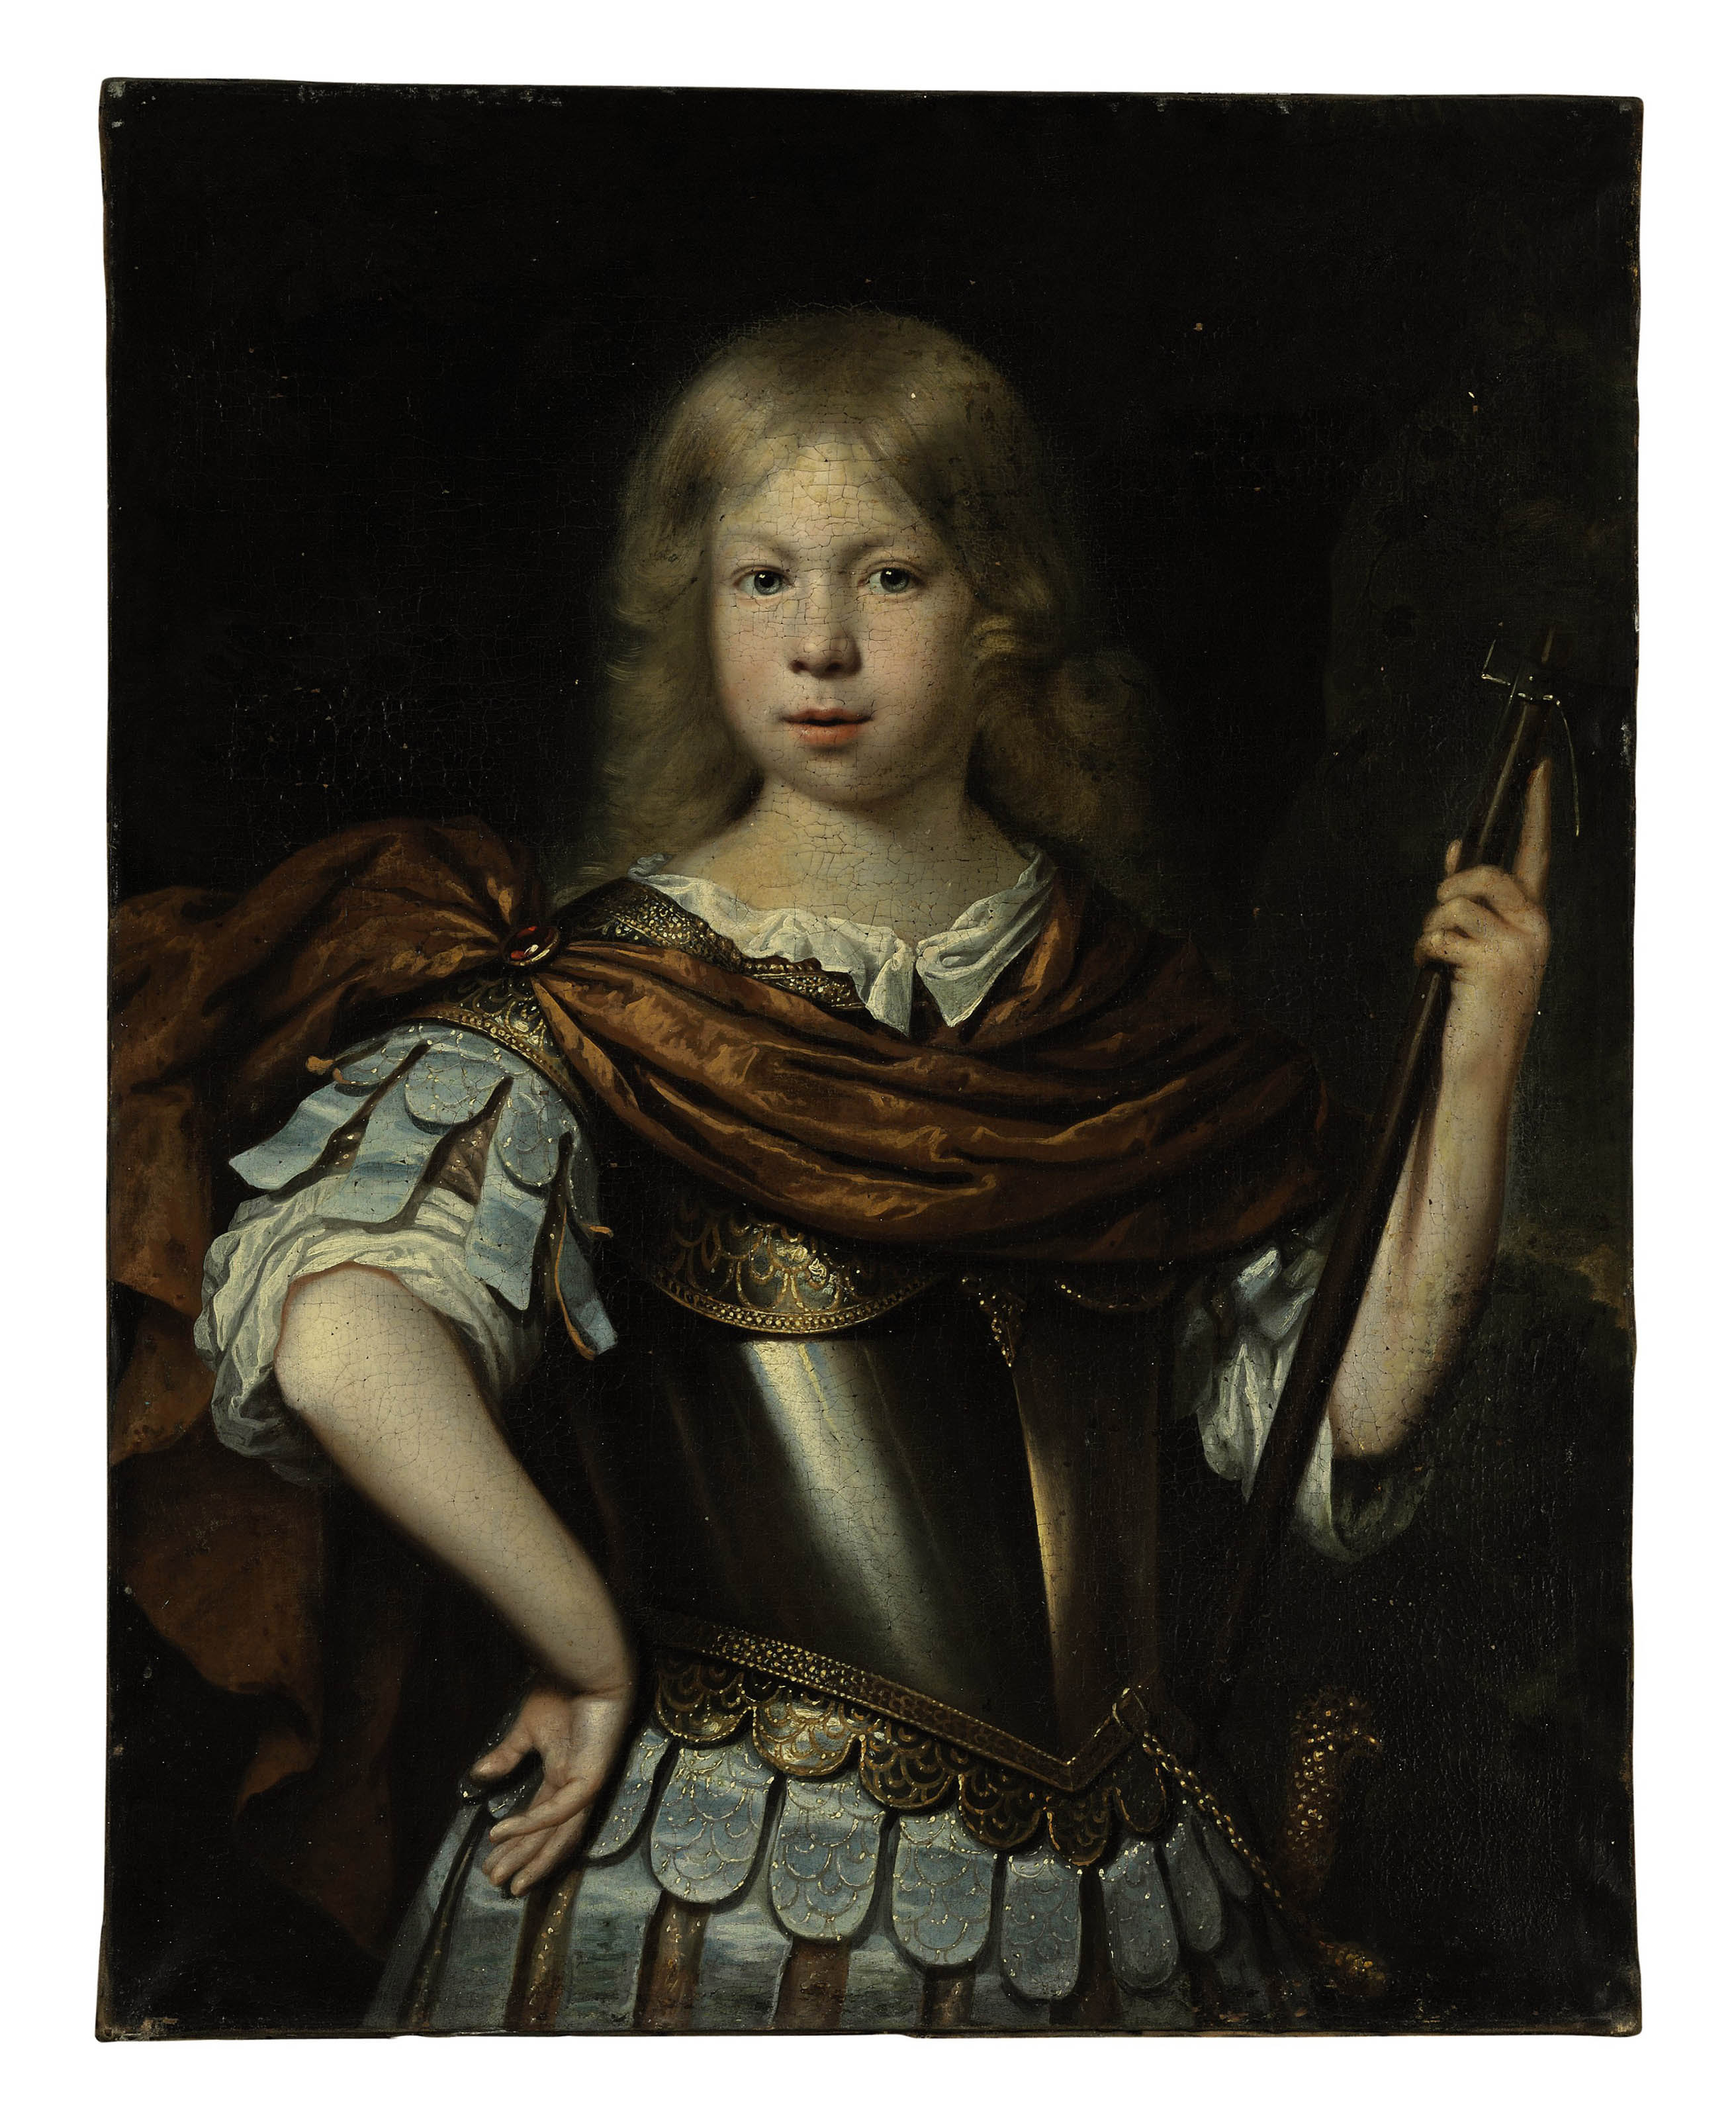 Portrait of a boy, possibly Willem van Liere (1653-1706), as Mars, in classical dress with a cuirass, sword and halberd, in a landscape